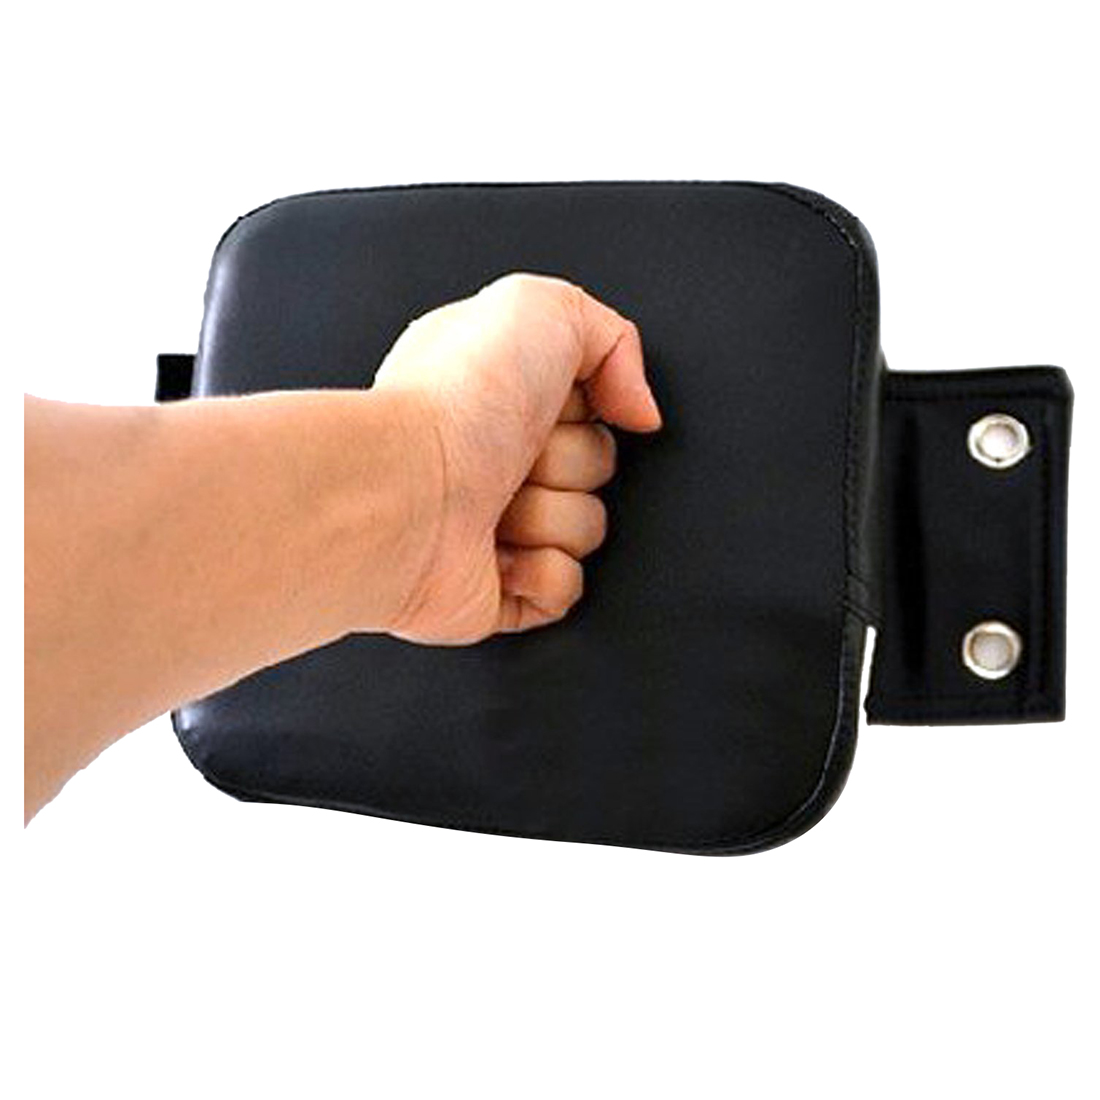 MUMIAN Punch Wall Focus Target Pad WING CHUN Boxing Fight Sanda Taekowndo Training Bag